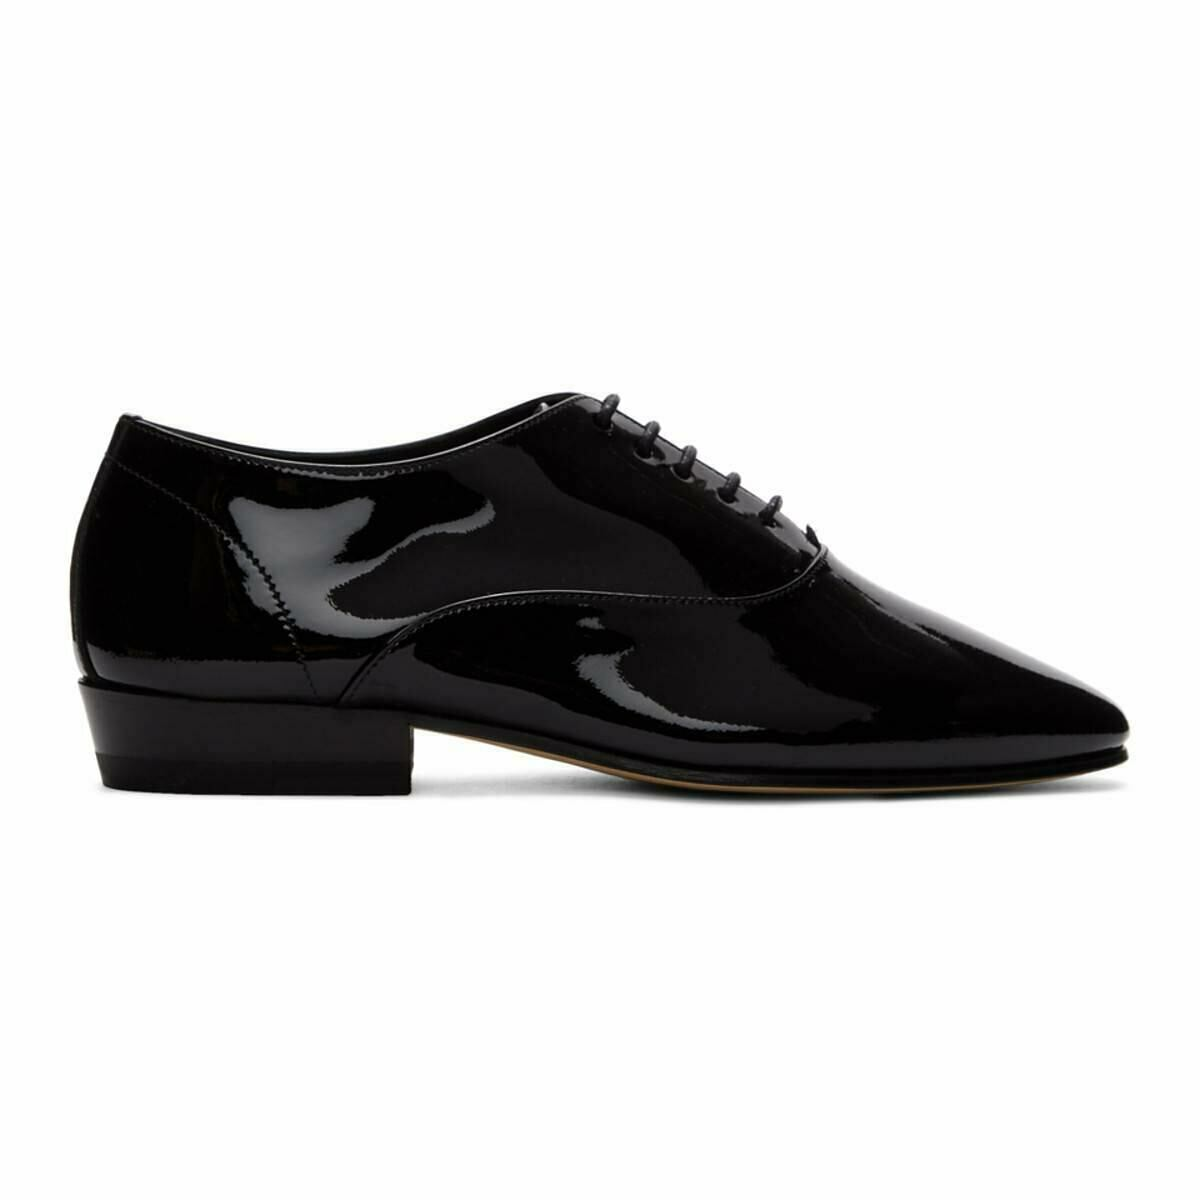 Saint Laurent Black Patent Leon Oxfords Ssense USA WOMEN Women SHOES Womens LEATHER SHOES